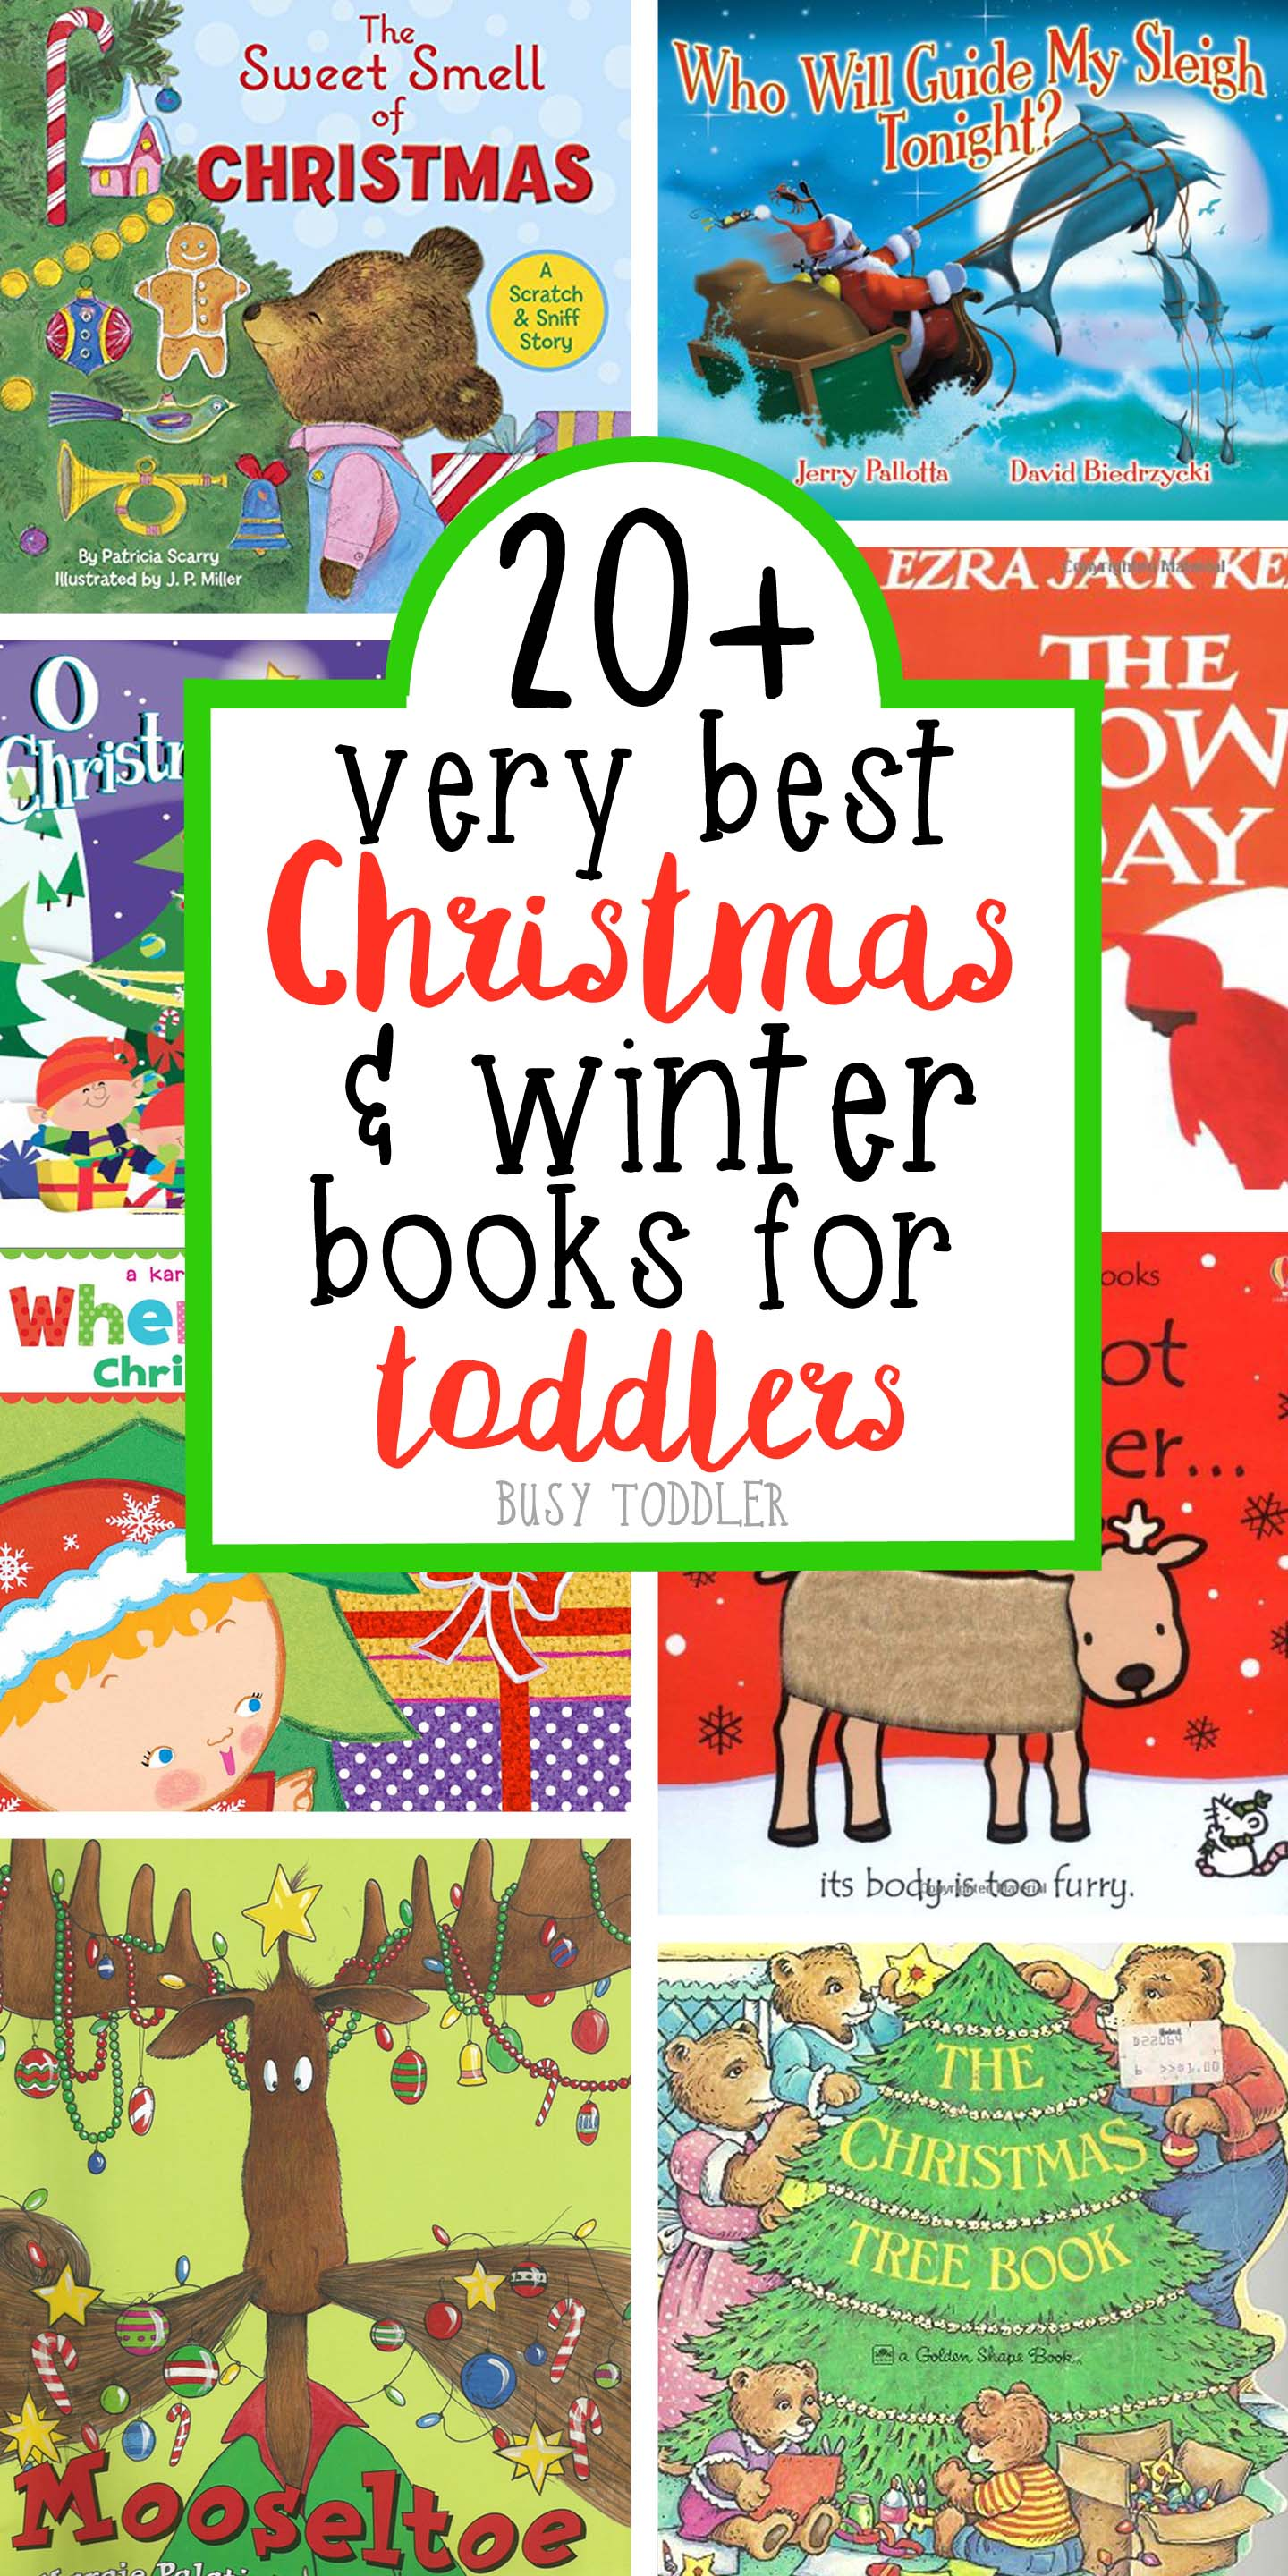 best christmas books for toddlers check out this list of 20 christmas books - Christmas Story For Toddlers